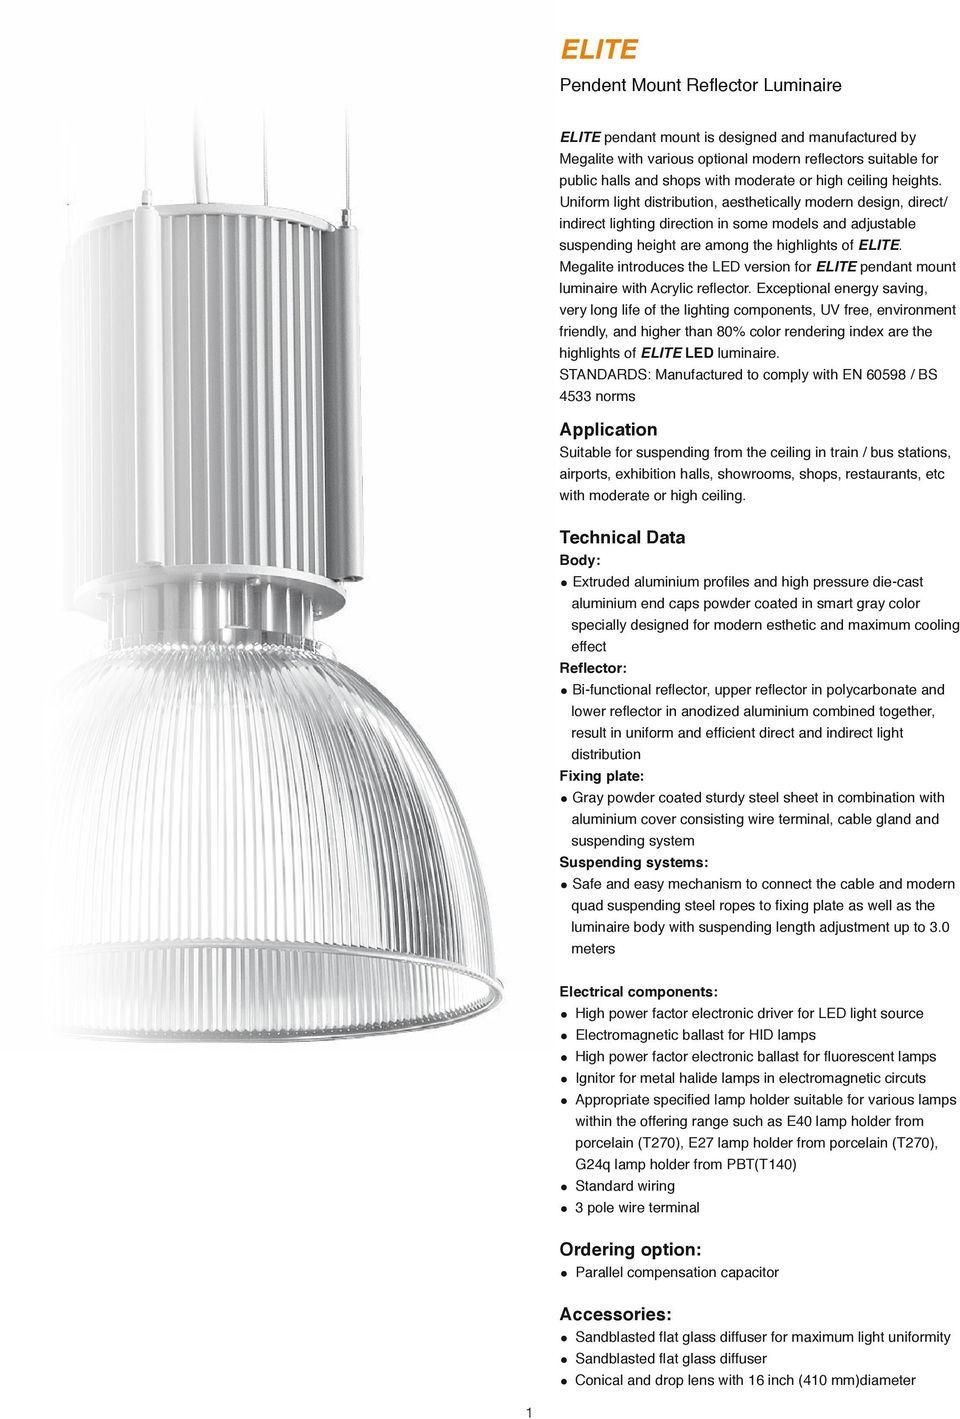 Megalite introduces the LED version for ELITE pendant mount luminaire with Acrylic reflector.